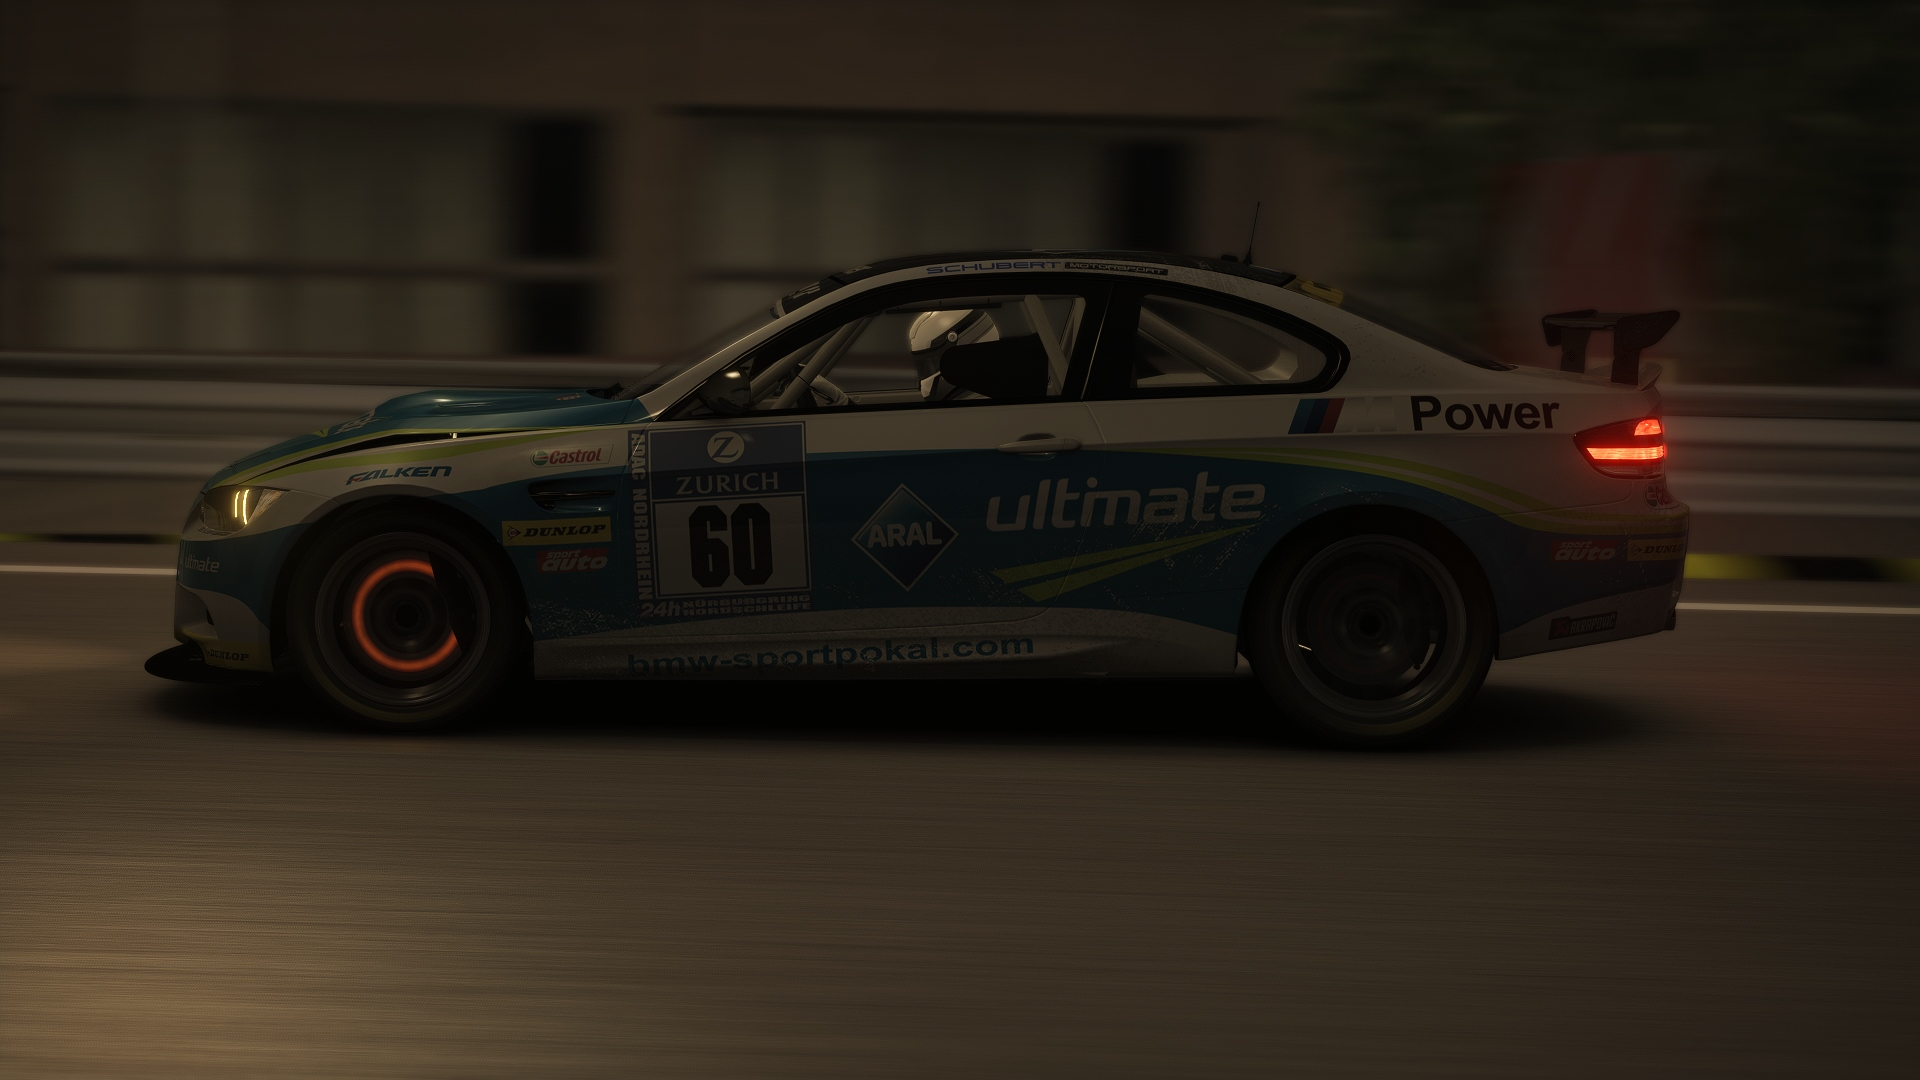 Screenshot_accr_bmw_m3_e92_gt4_special_stage_route_5_29-5-121-2-31-21.jpg